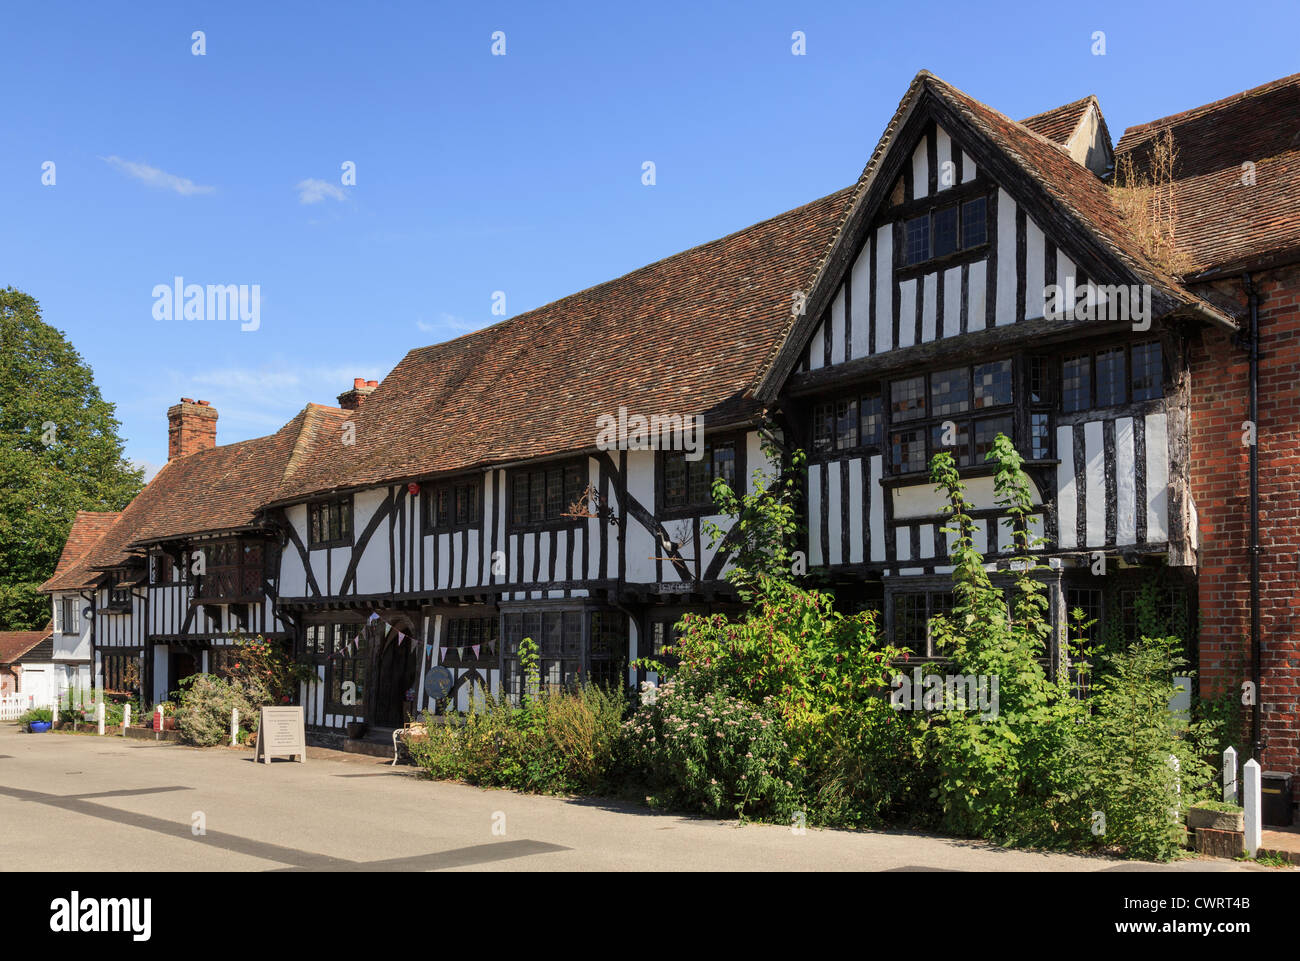 Row of timber-framed Tudor period houses in picturesque medieval Kentish village square, Chilham, Kent, England, - Stock Image